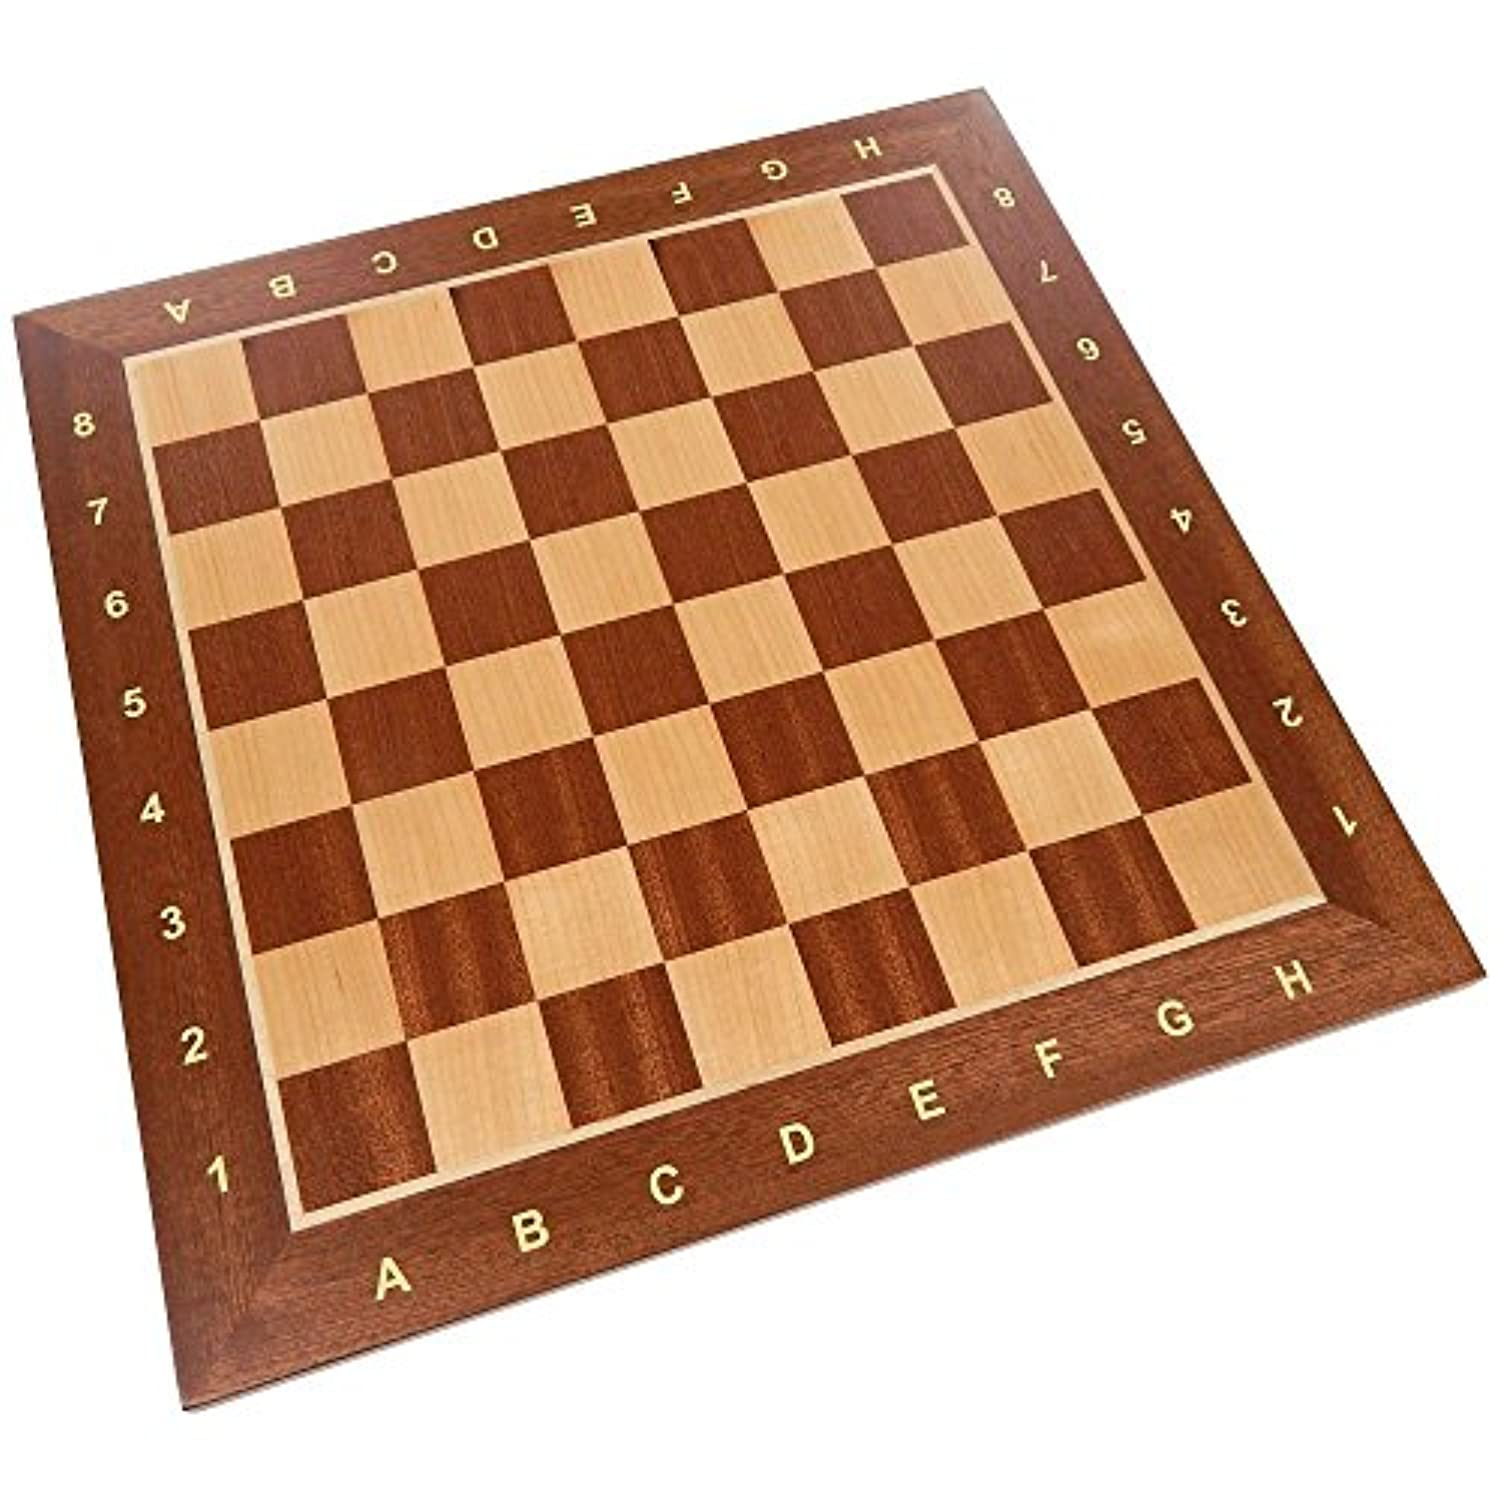 Requa Chess Board with Inlaid Wood and Ranks and Files (Numbers and Letters on Side) - Board Only - 15 Inch [並行輸入品]